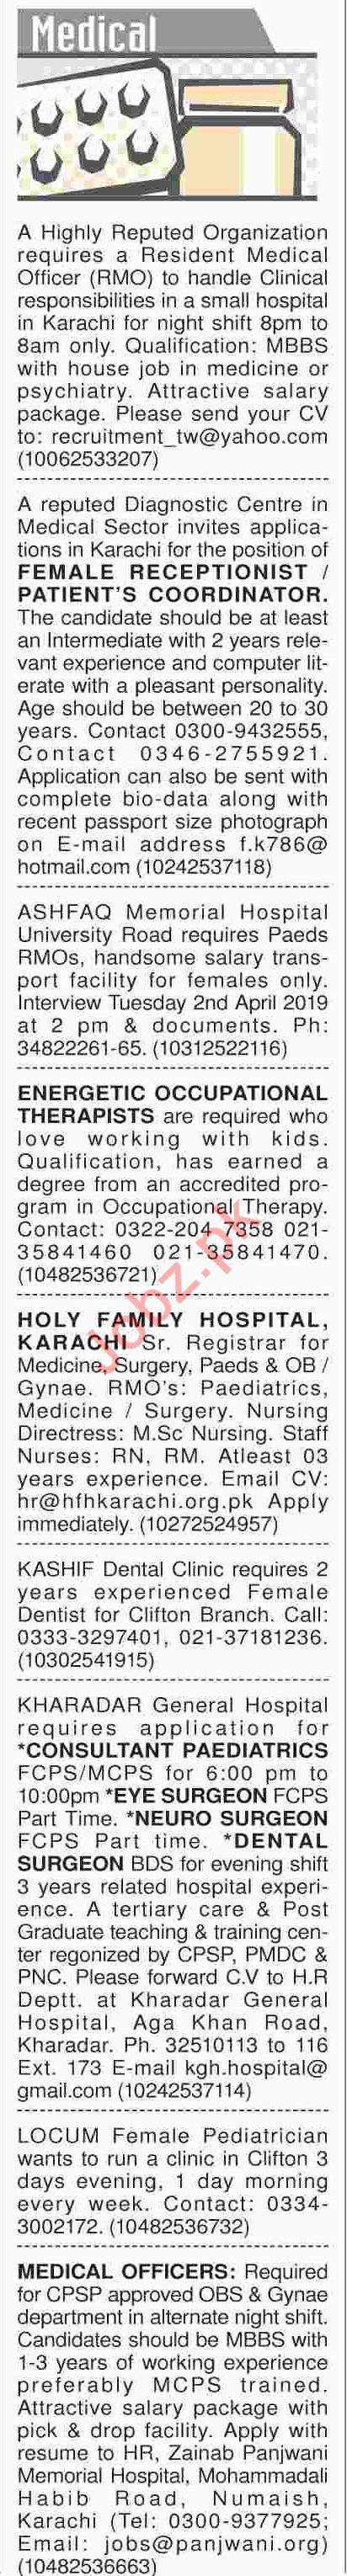 Dawn Sunday Classified Ads 31st March 2019 for Medical Staff